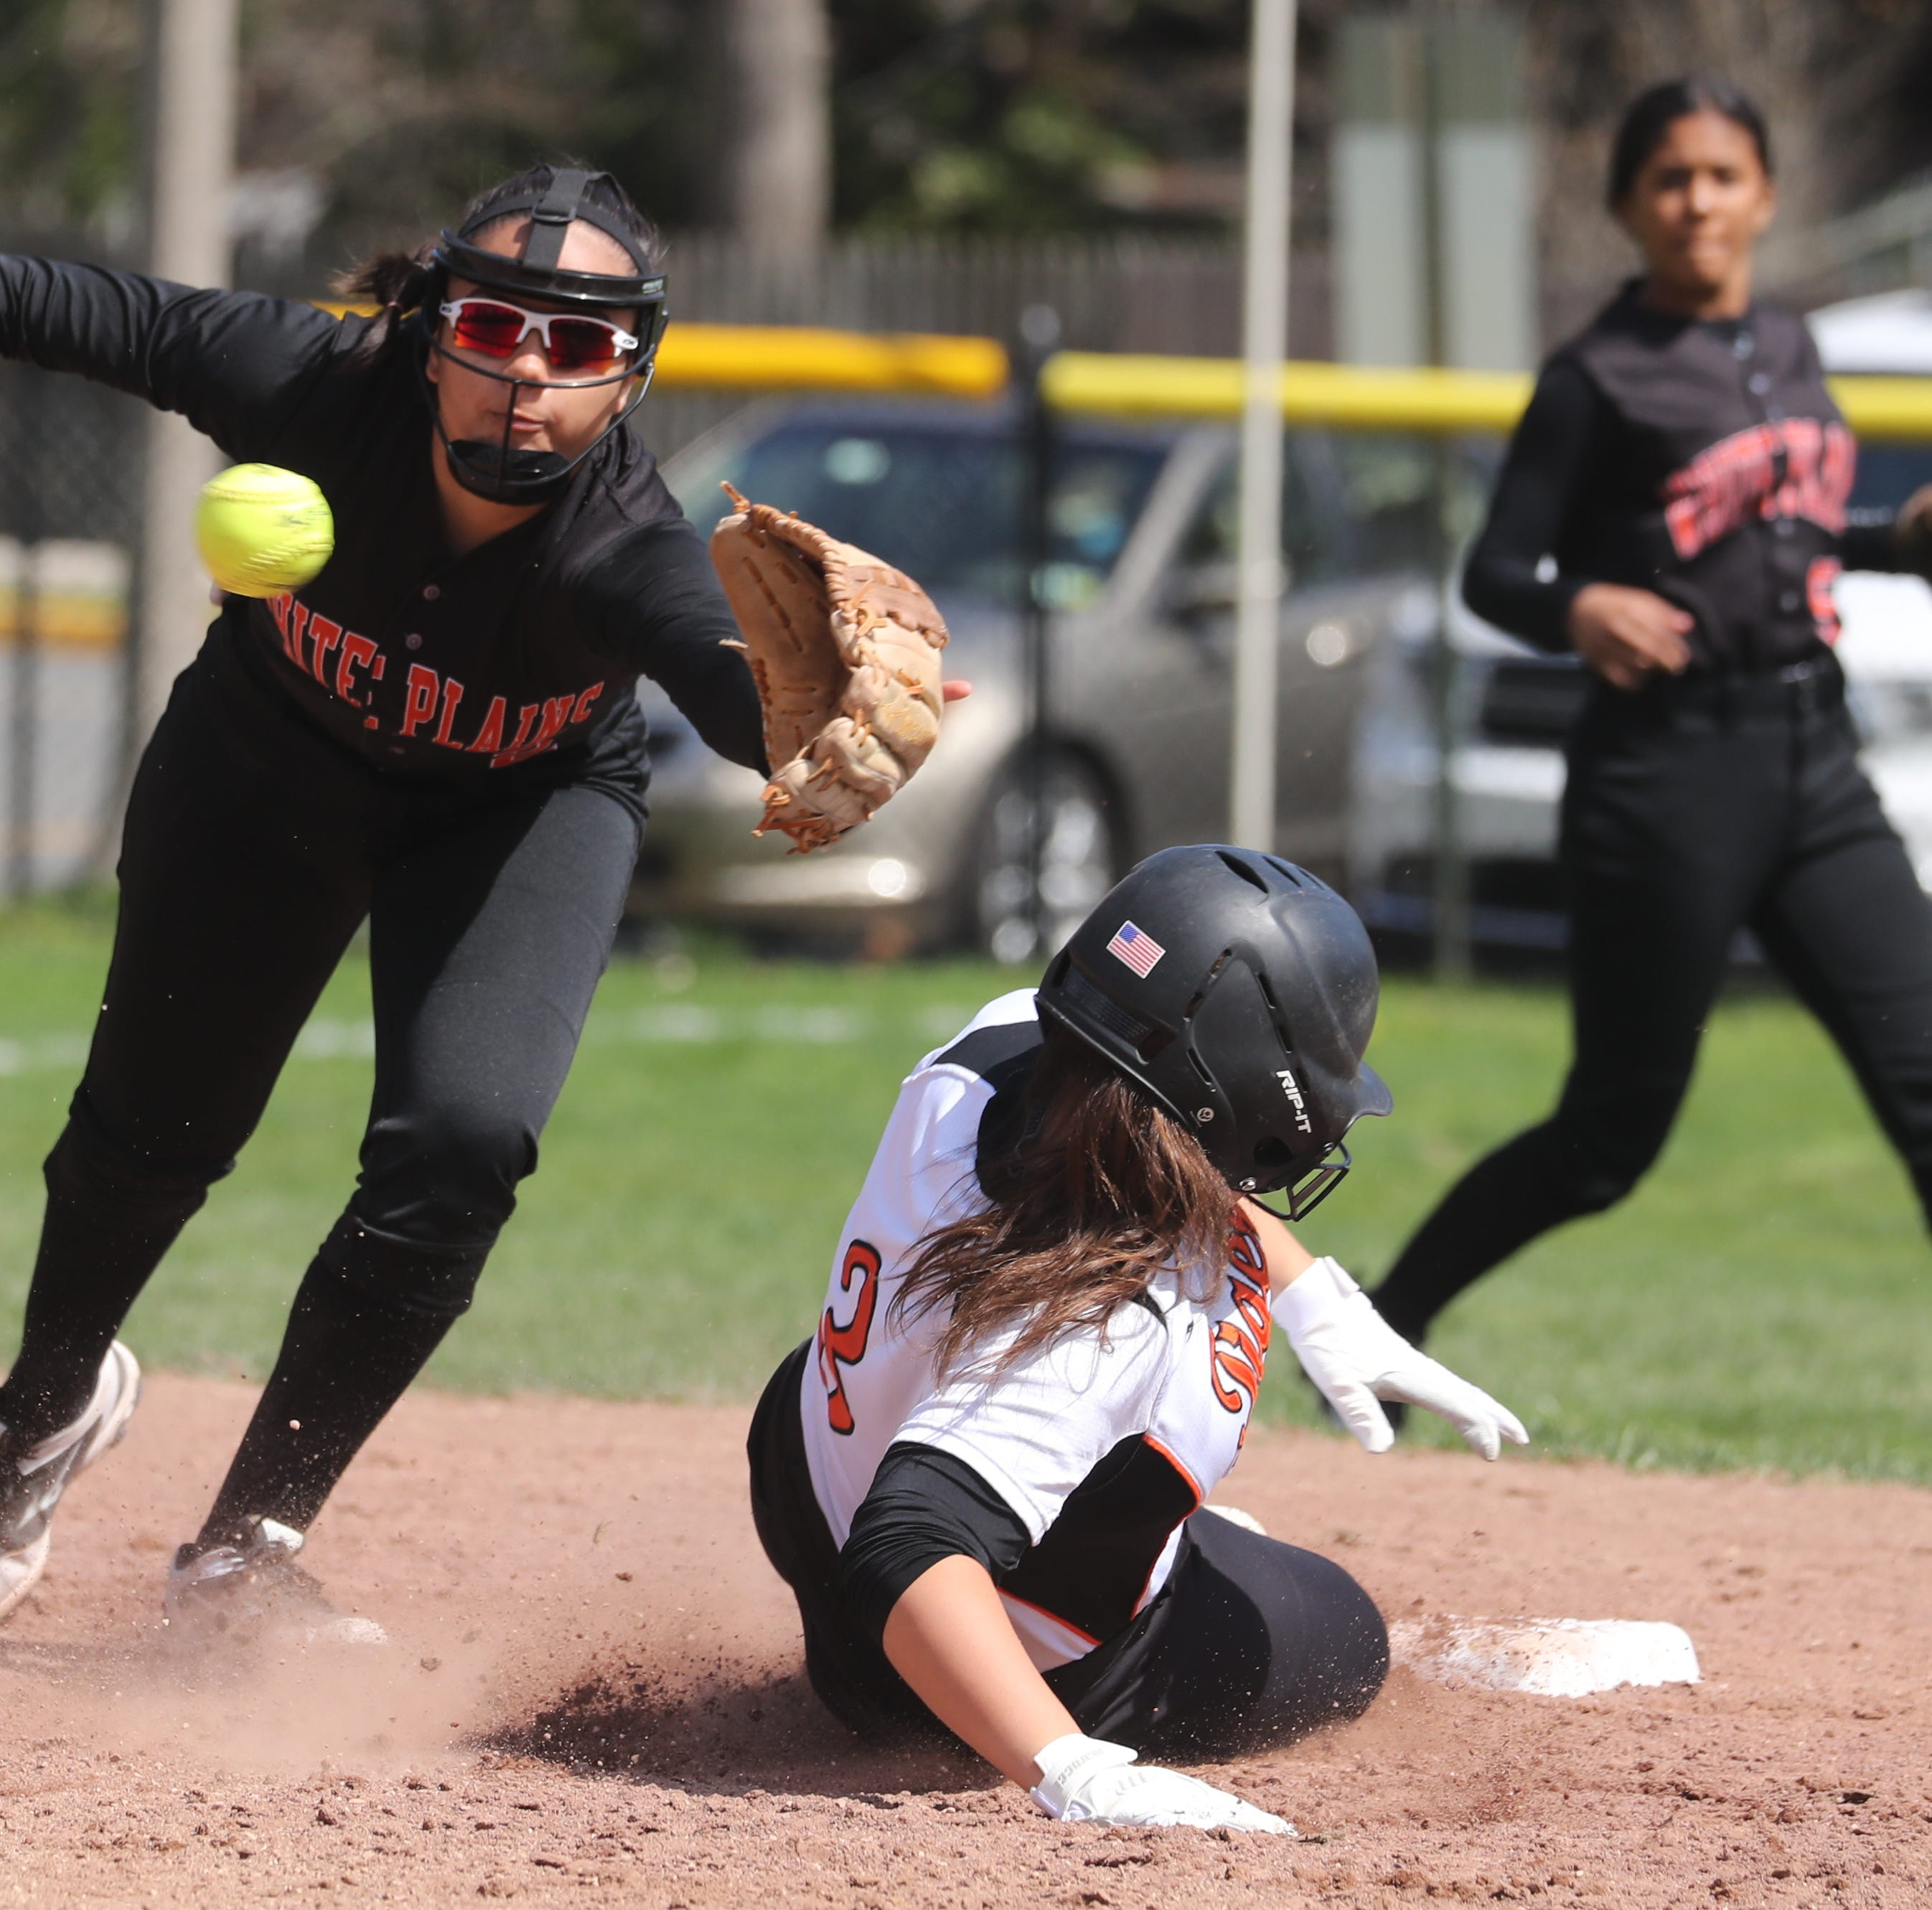 Softball: 2019 Section 1 tournament seeds and schedule